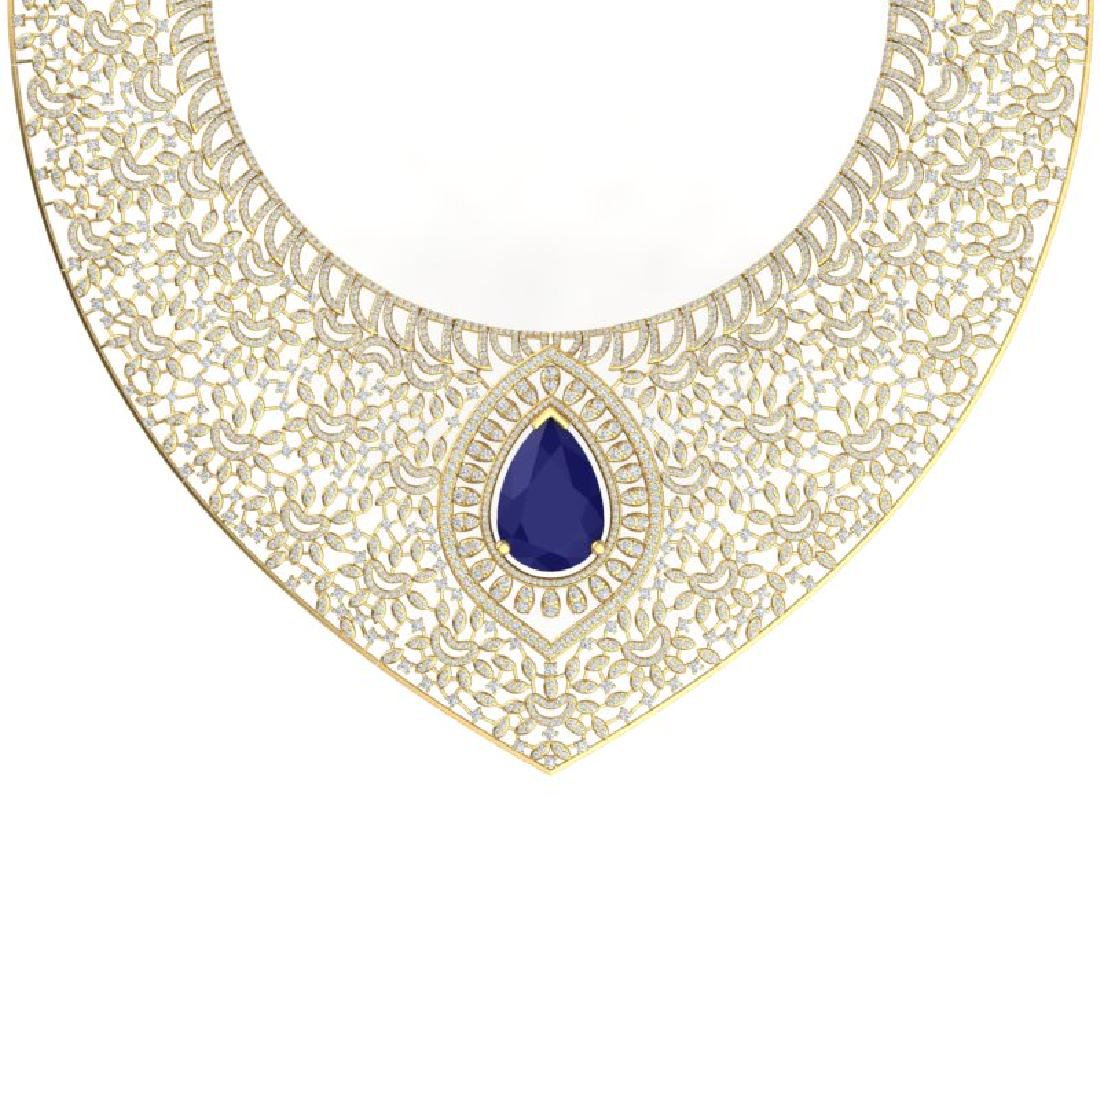 63.93 CTW Royalty Sapphire & VS Diamond Necklace 18K - 2